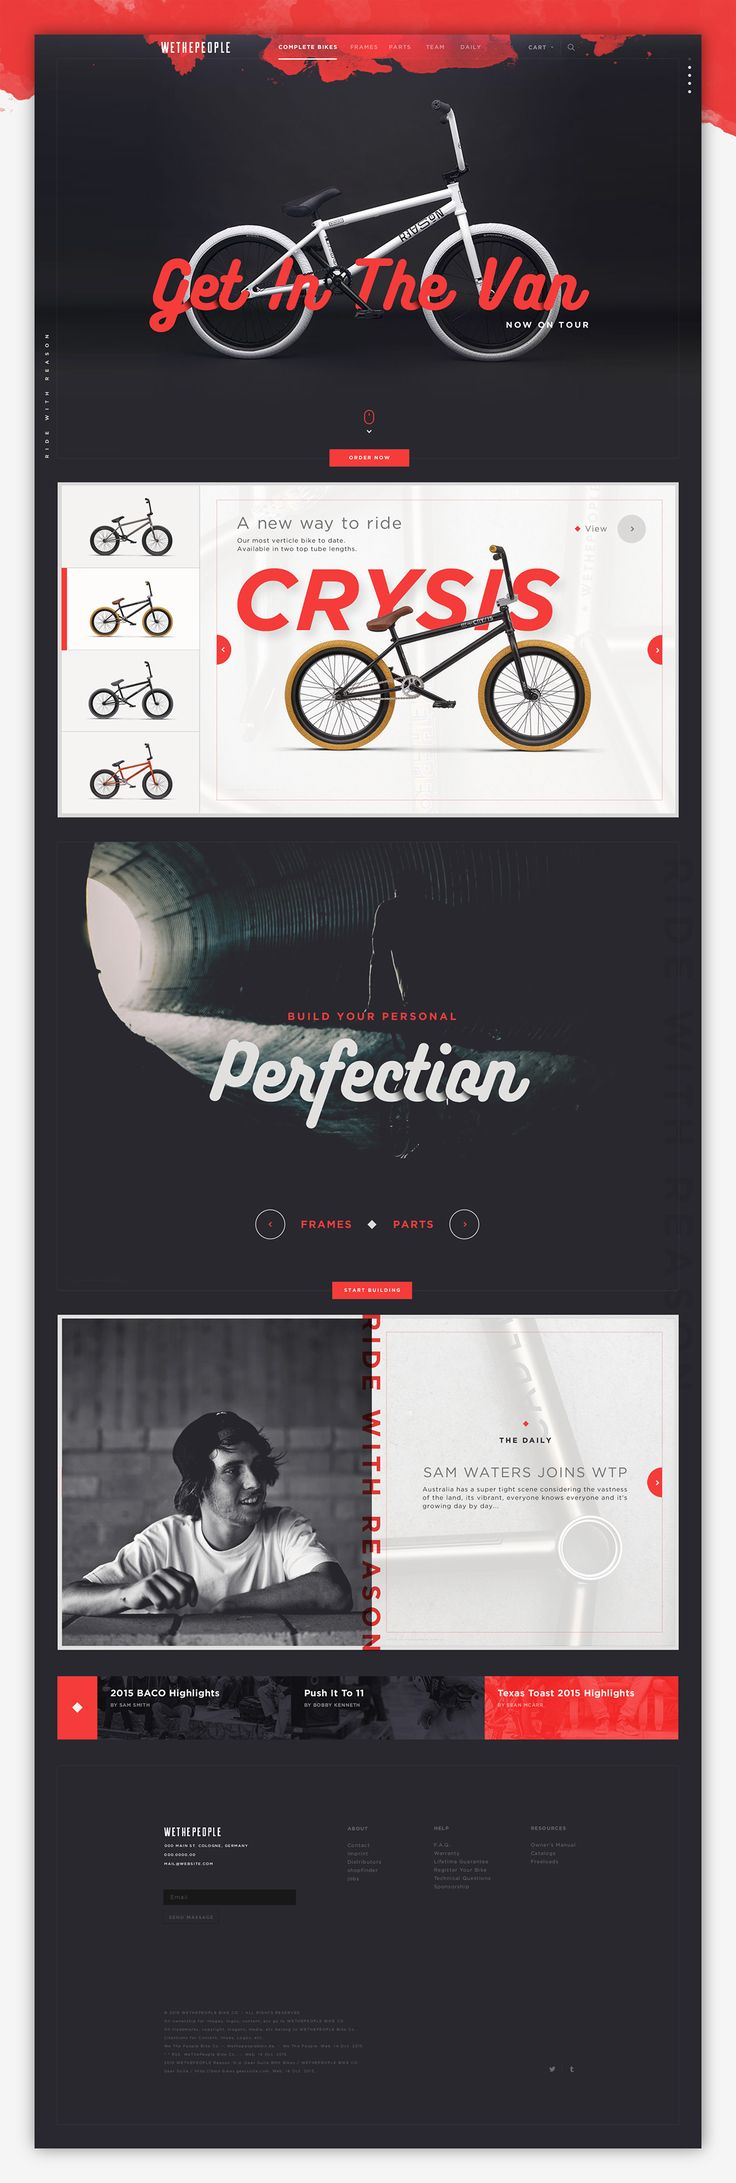 WTP Bmx bike website design.